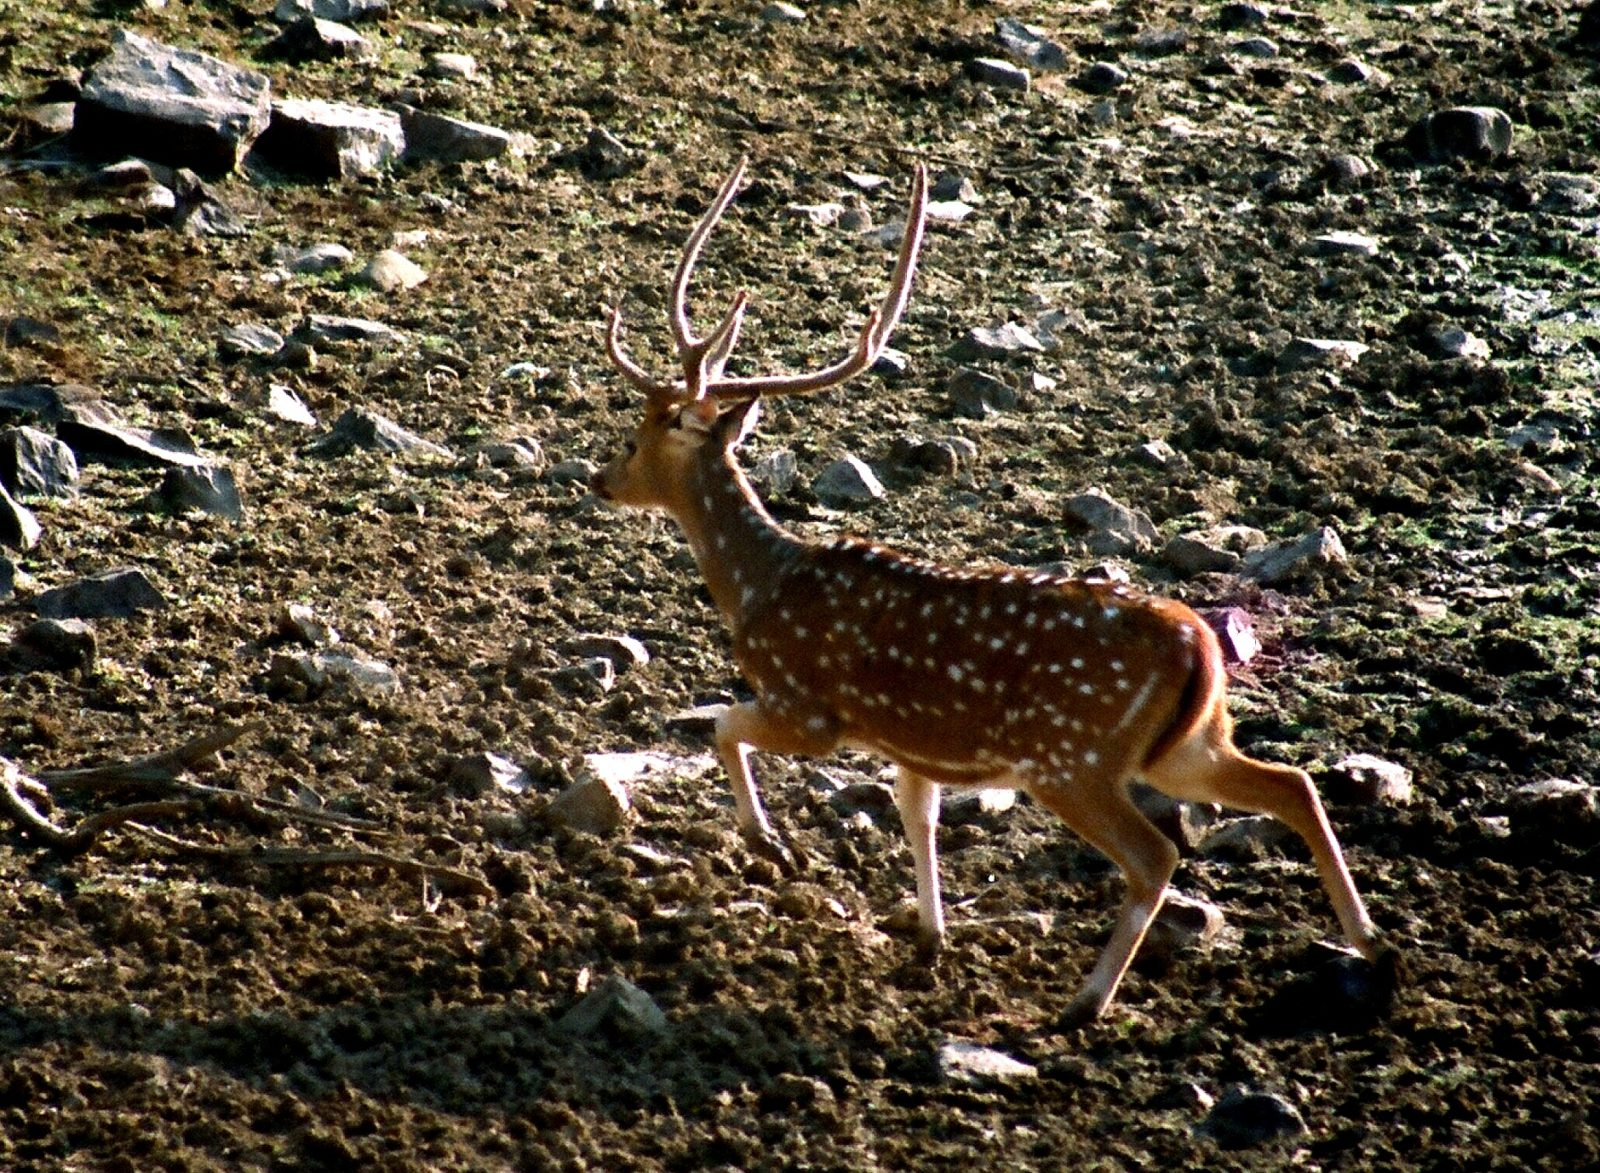 A SPOTTED DEER ON THE RUN